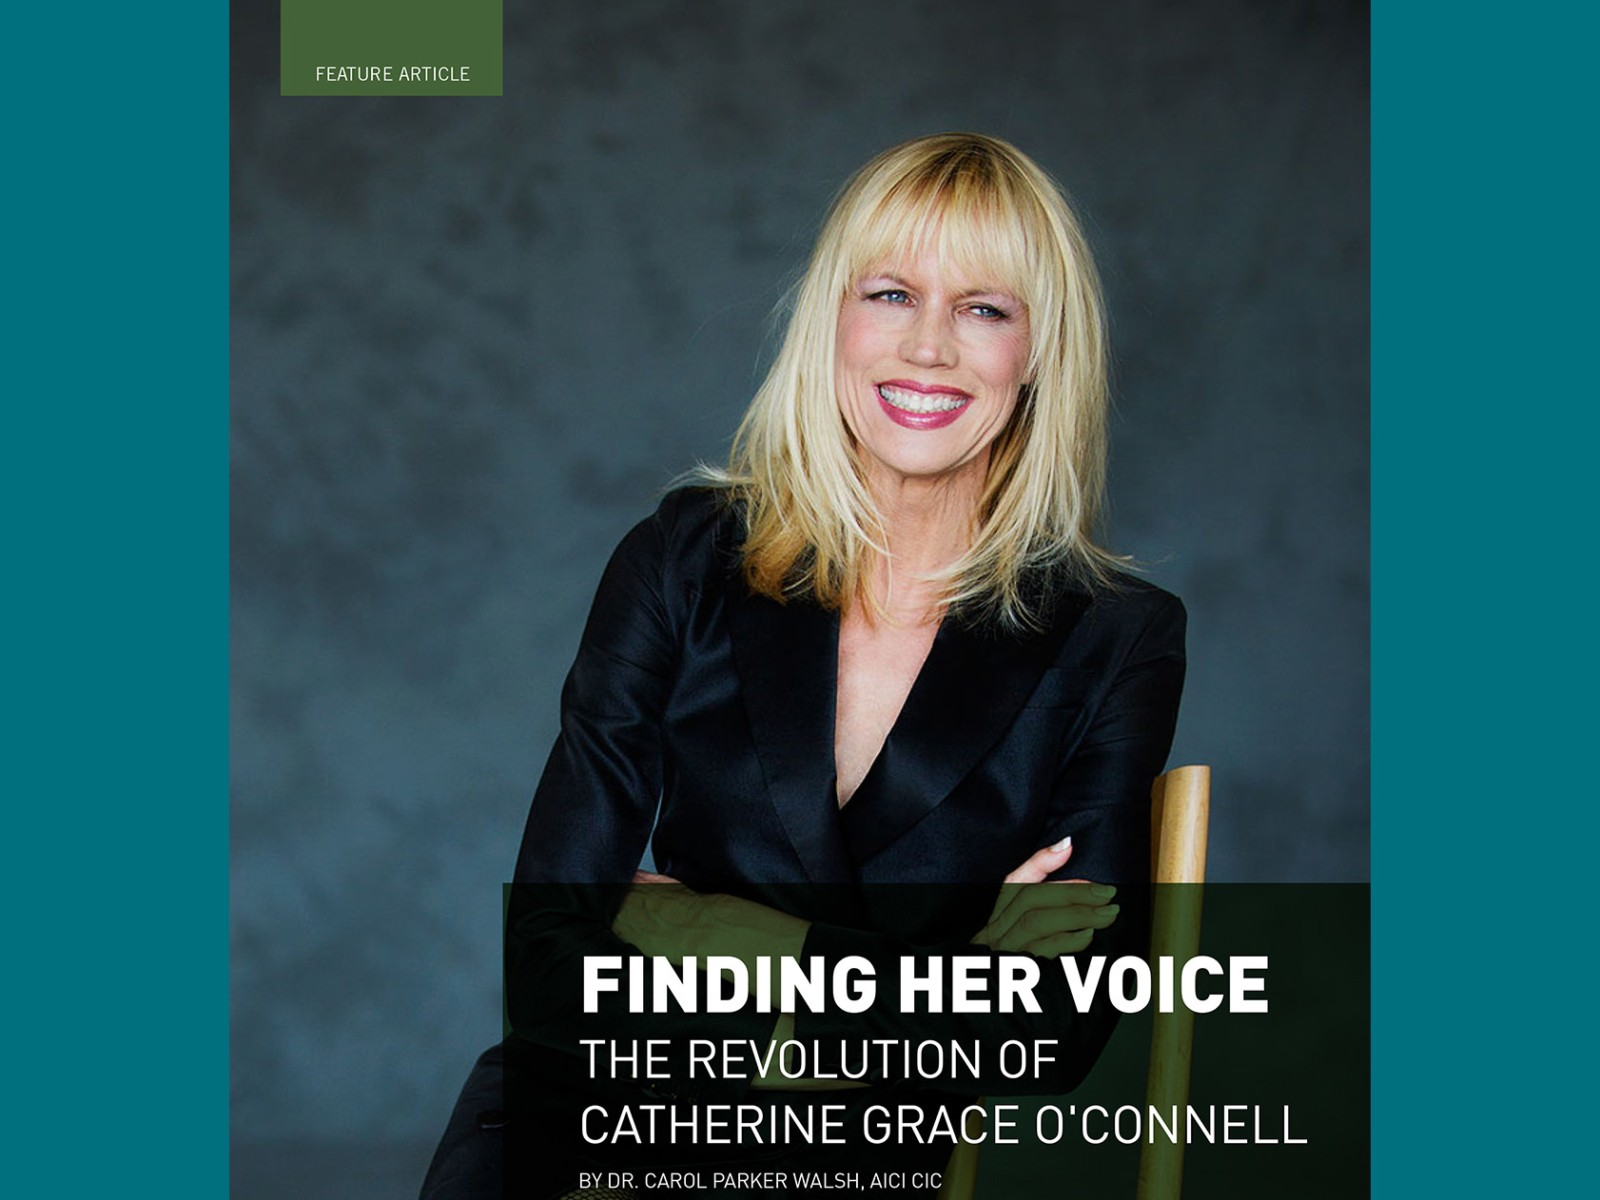 Finding Her Voice: The Revolution of Catherine Grace O'Connell